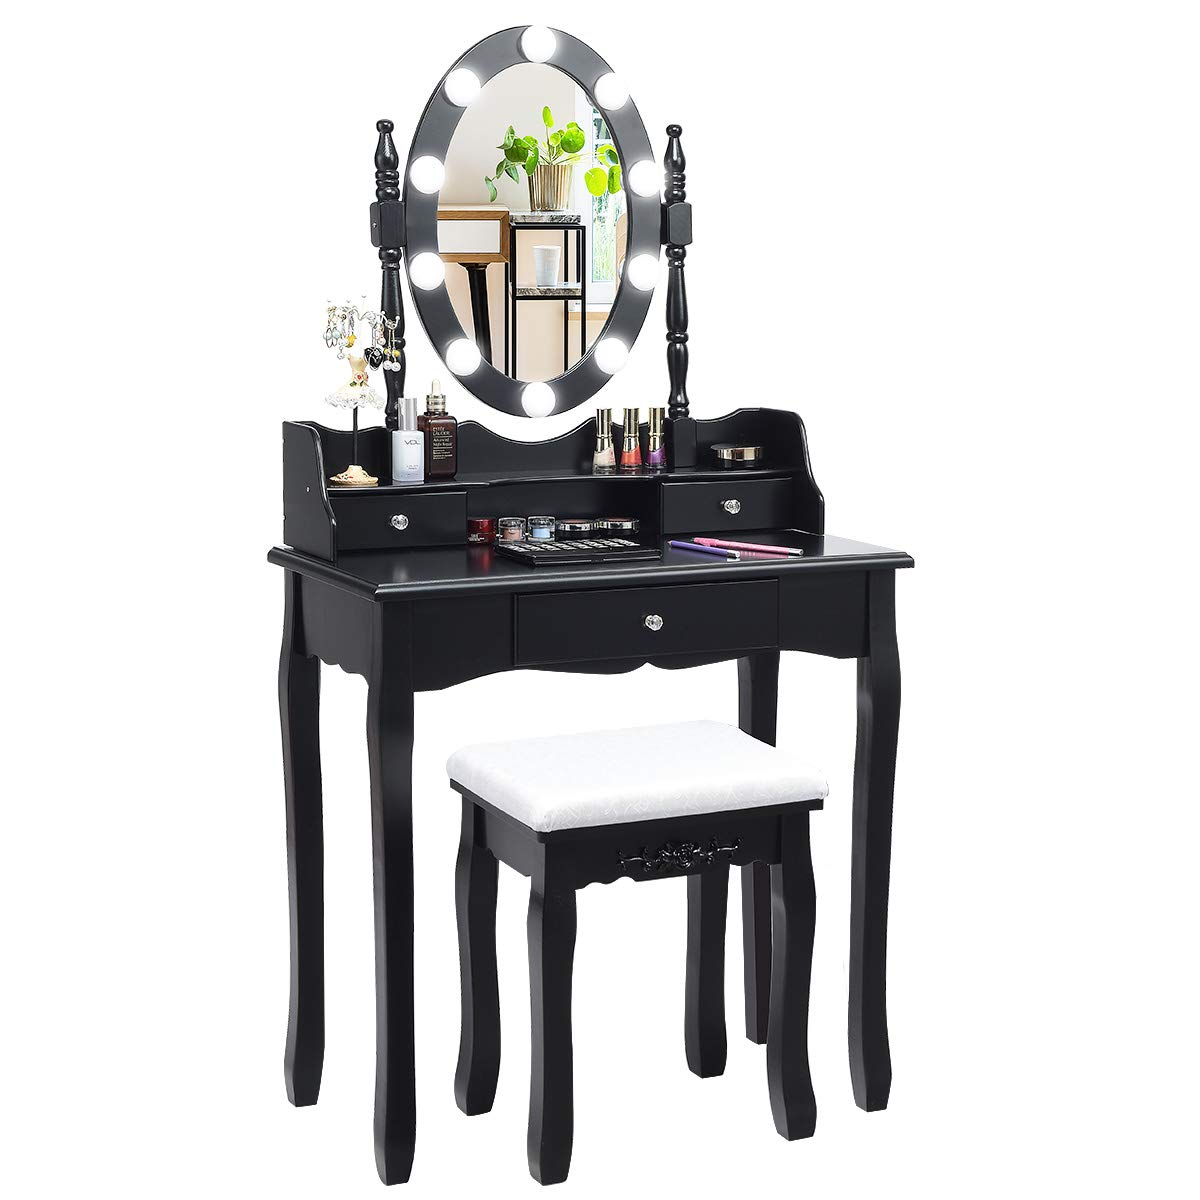 CHARMAID Vanity Set with Lighted Oval Mirror, Makeup Dressing Table with 10 LED Dimmable Bulbs and 3 Drawers, Modern Makeup Table with Cushioned Stool for Bedroom Bathroom Black